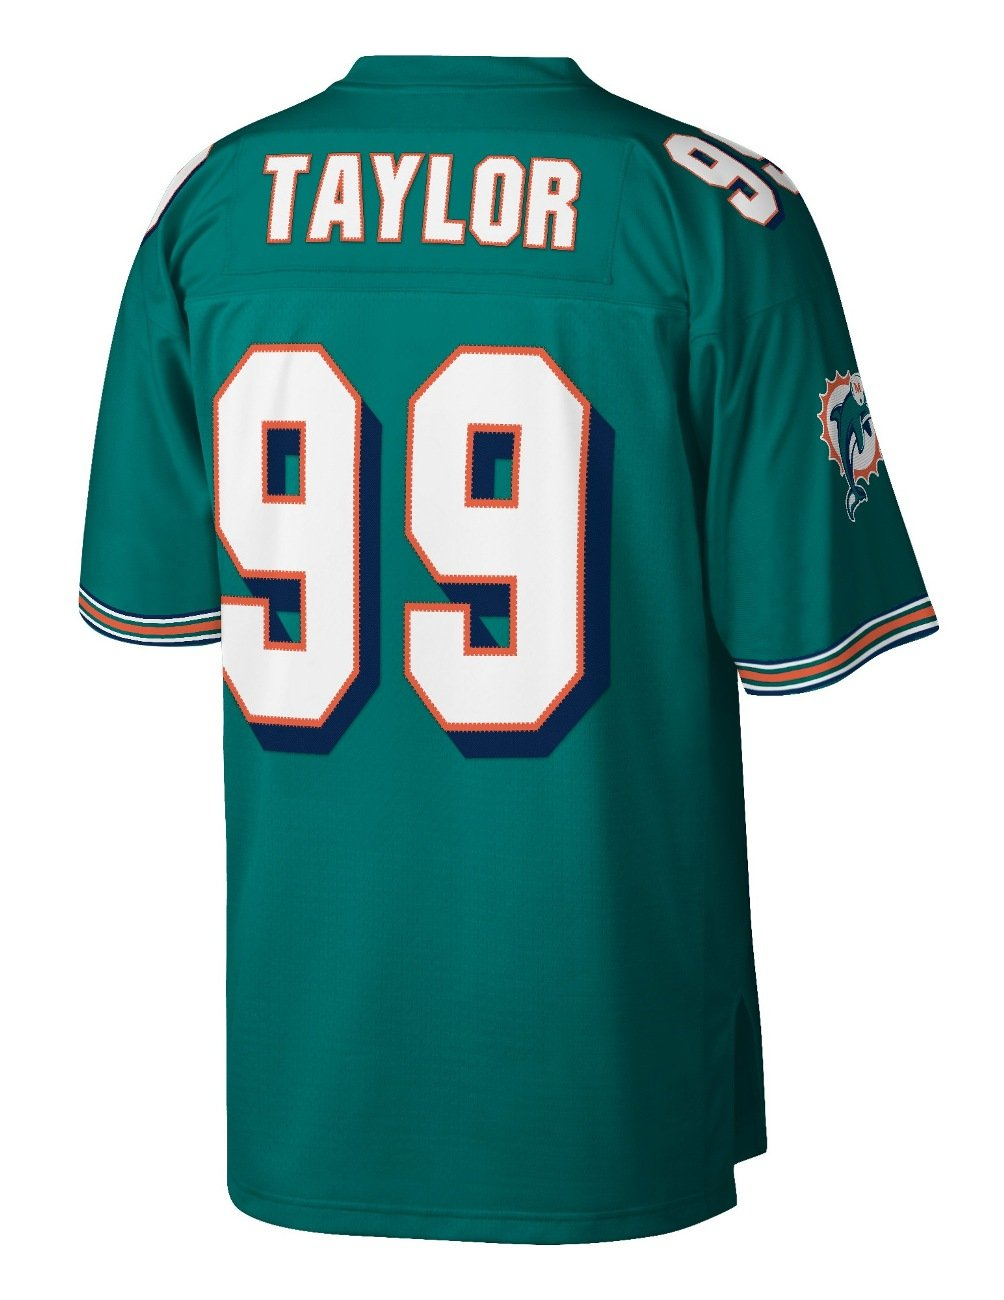 reputable site acdea 37727 Mitchell & Ness Jason Taylor Miami Dolphins NFL Throwback Premier Jersey